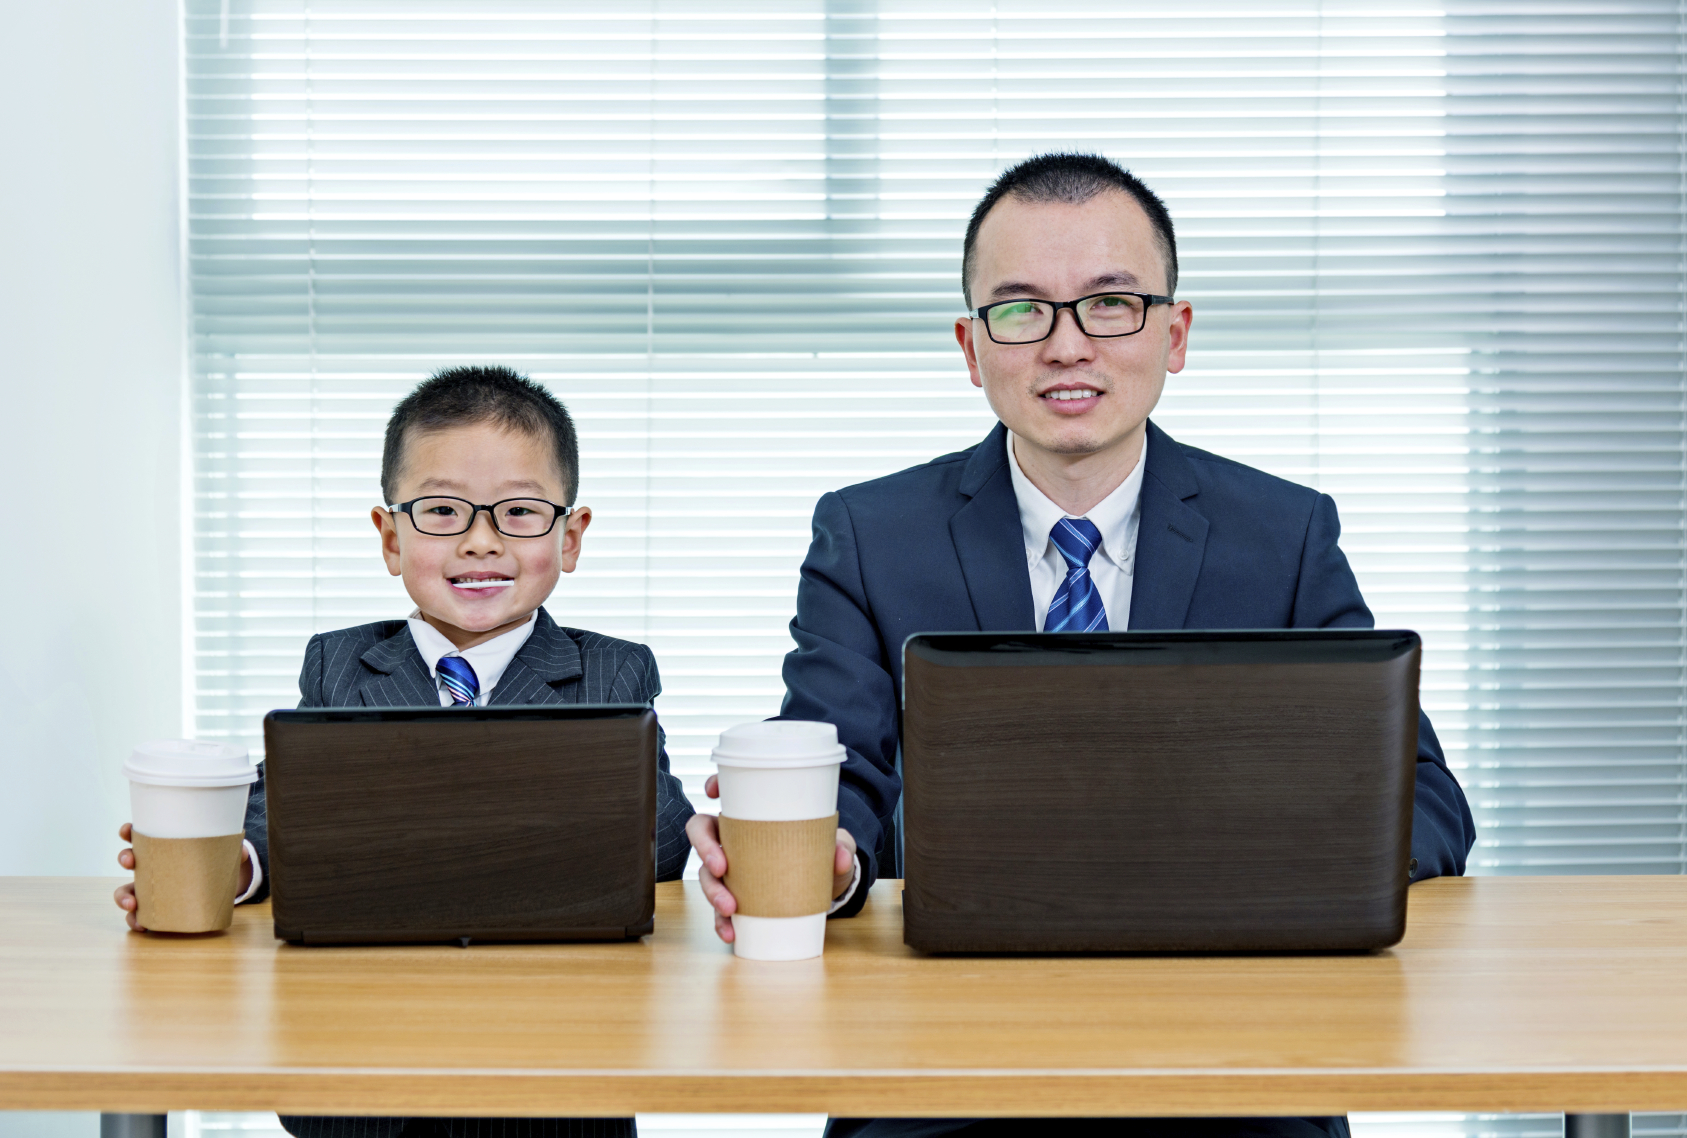 Father and son using laptops in office room.